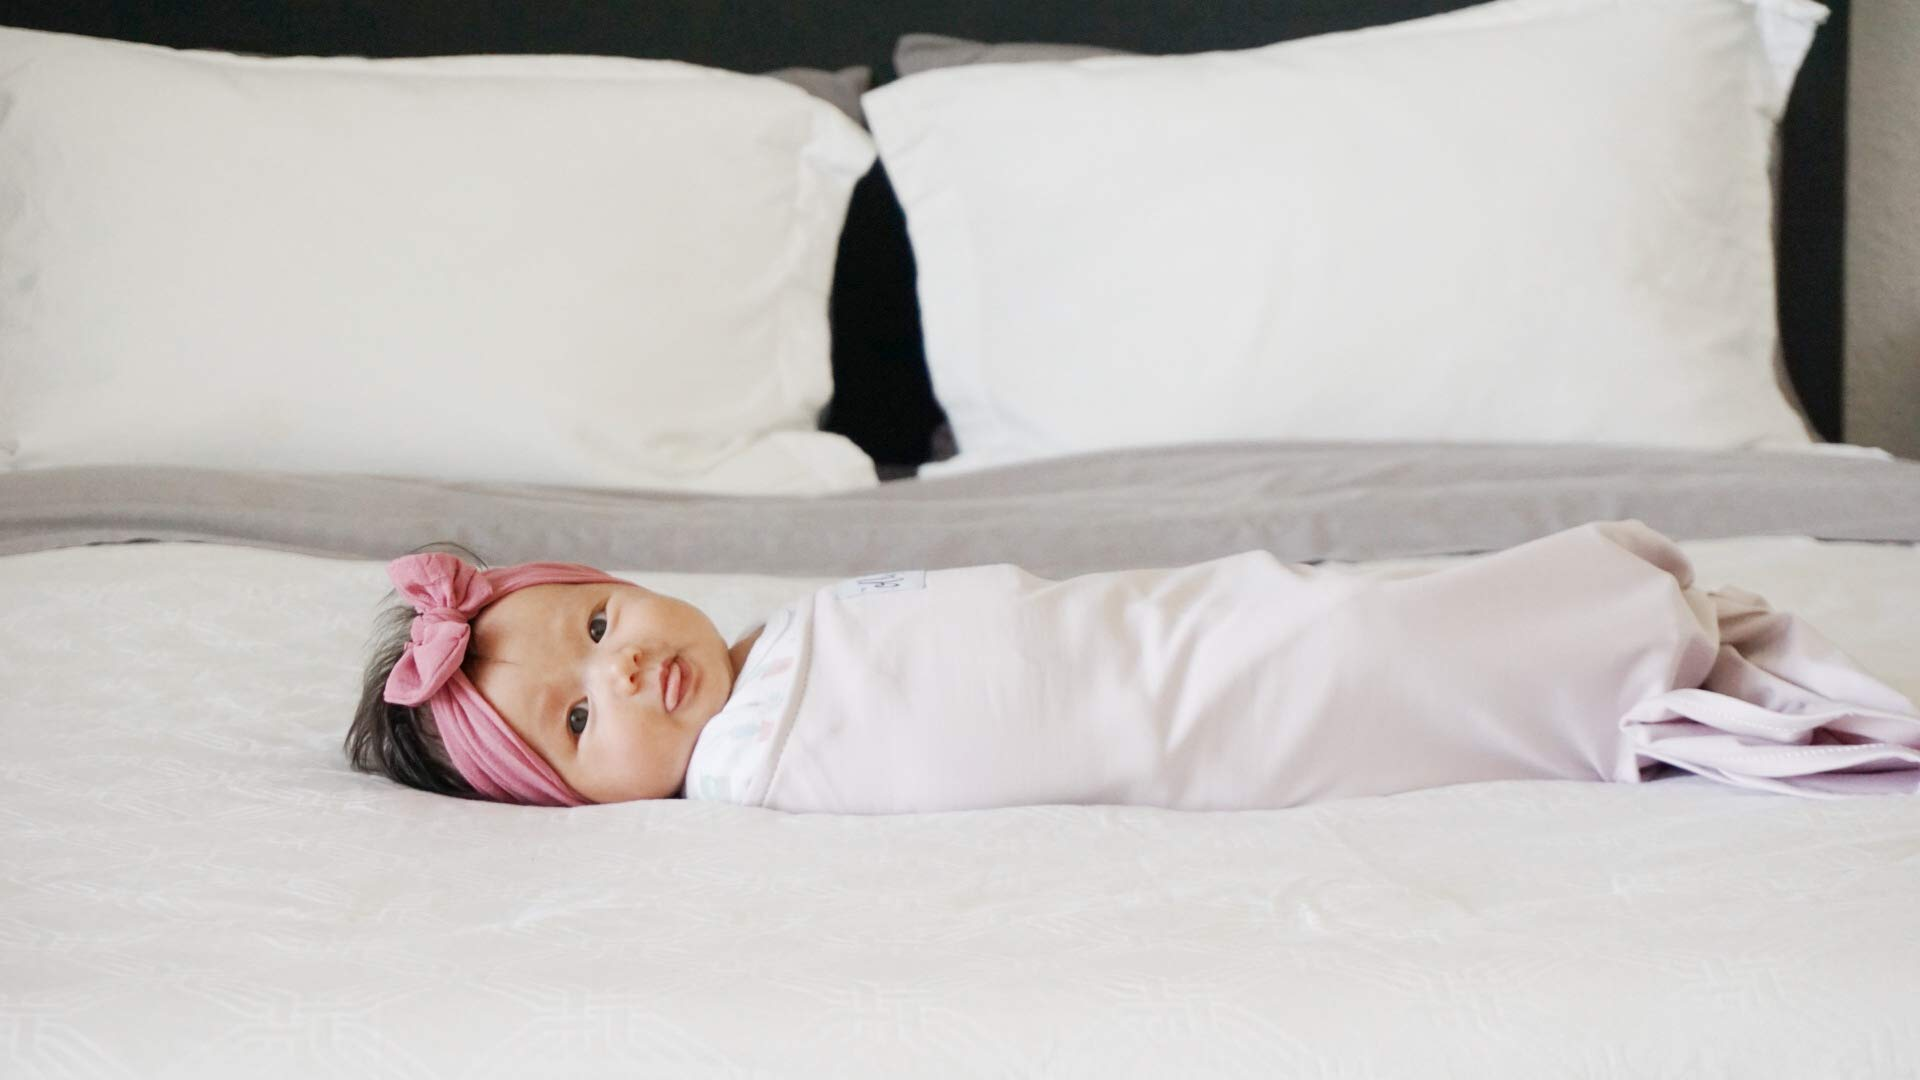 The Ollie Swaddle (Lavender) - Helps to Reduce The Moro (Startle) Reflex - Made from a Custom Designed Moisture-Wicking Material-No overheating-Size Adjustable for All Months of Babies by The Ollie (Image #6)